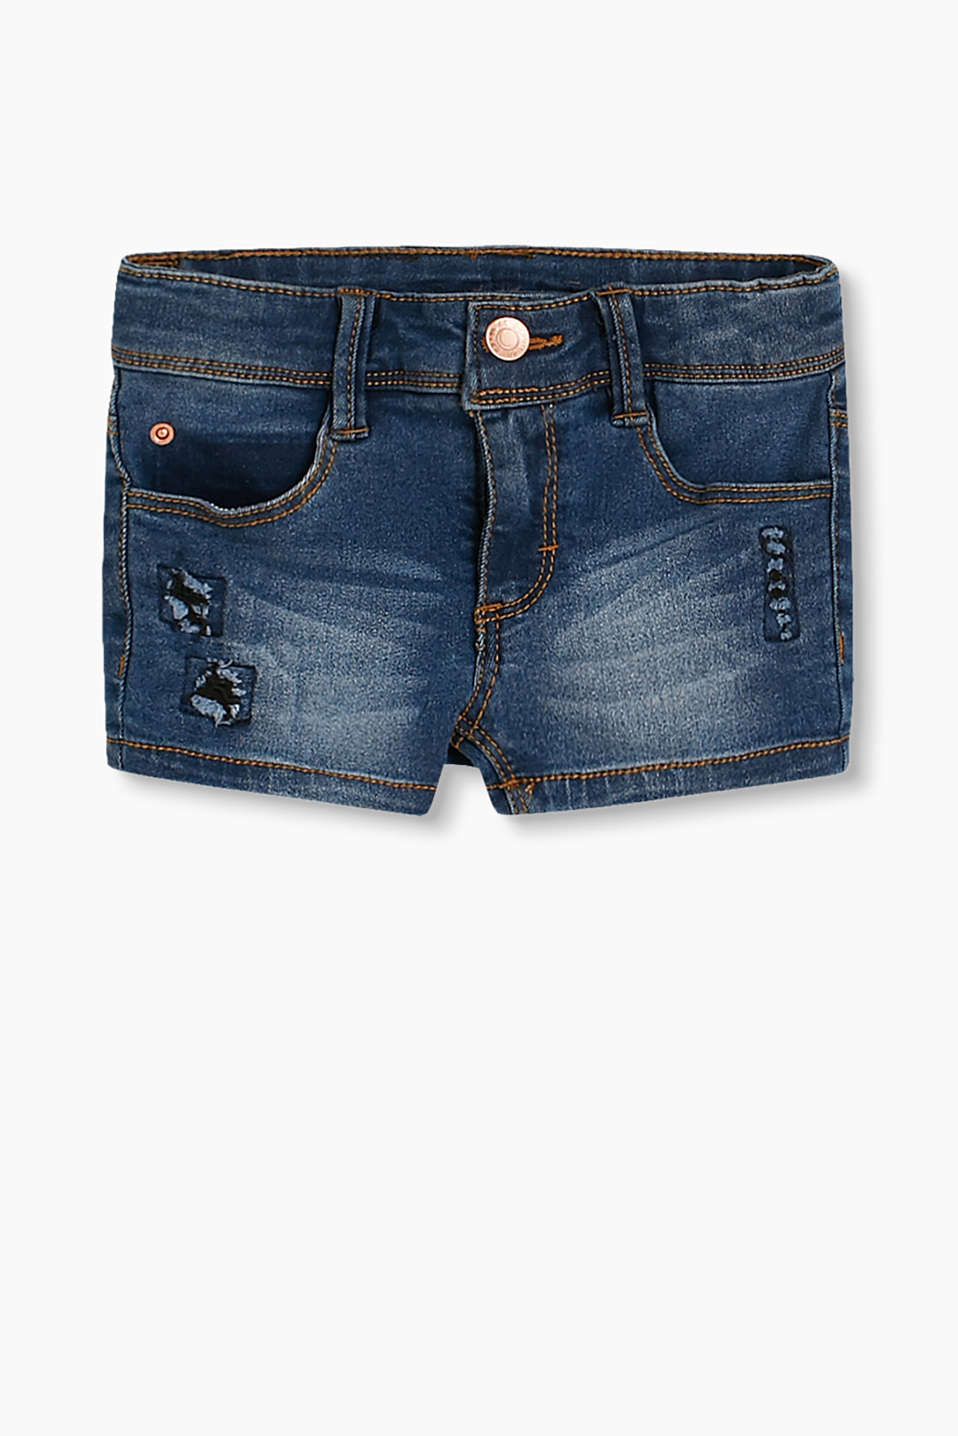 Casual shorts in soft stretch denim with fashionable vintage details and an adjustable waistband